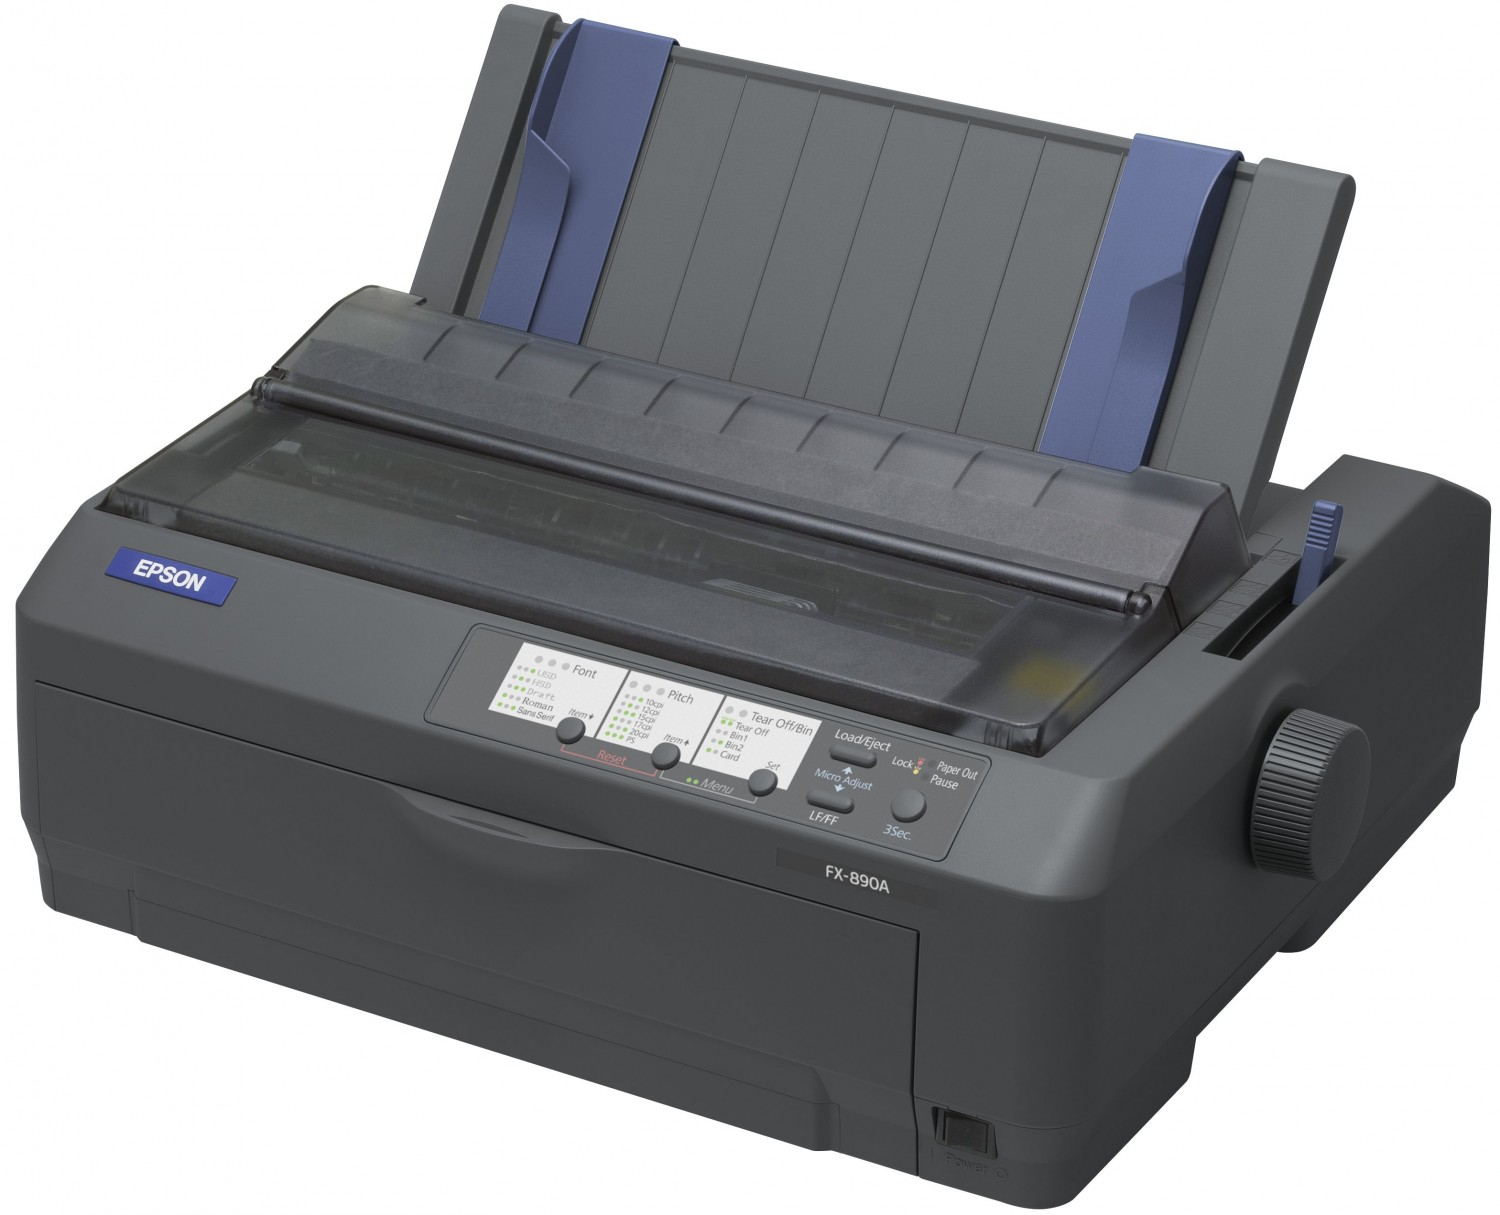 epson FX 890A driver download for window